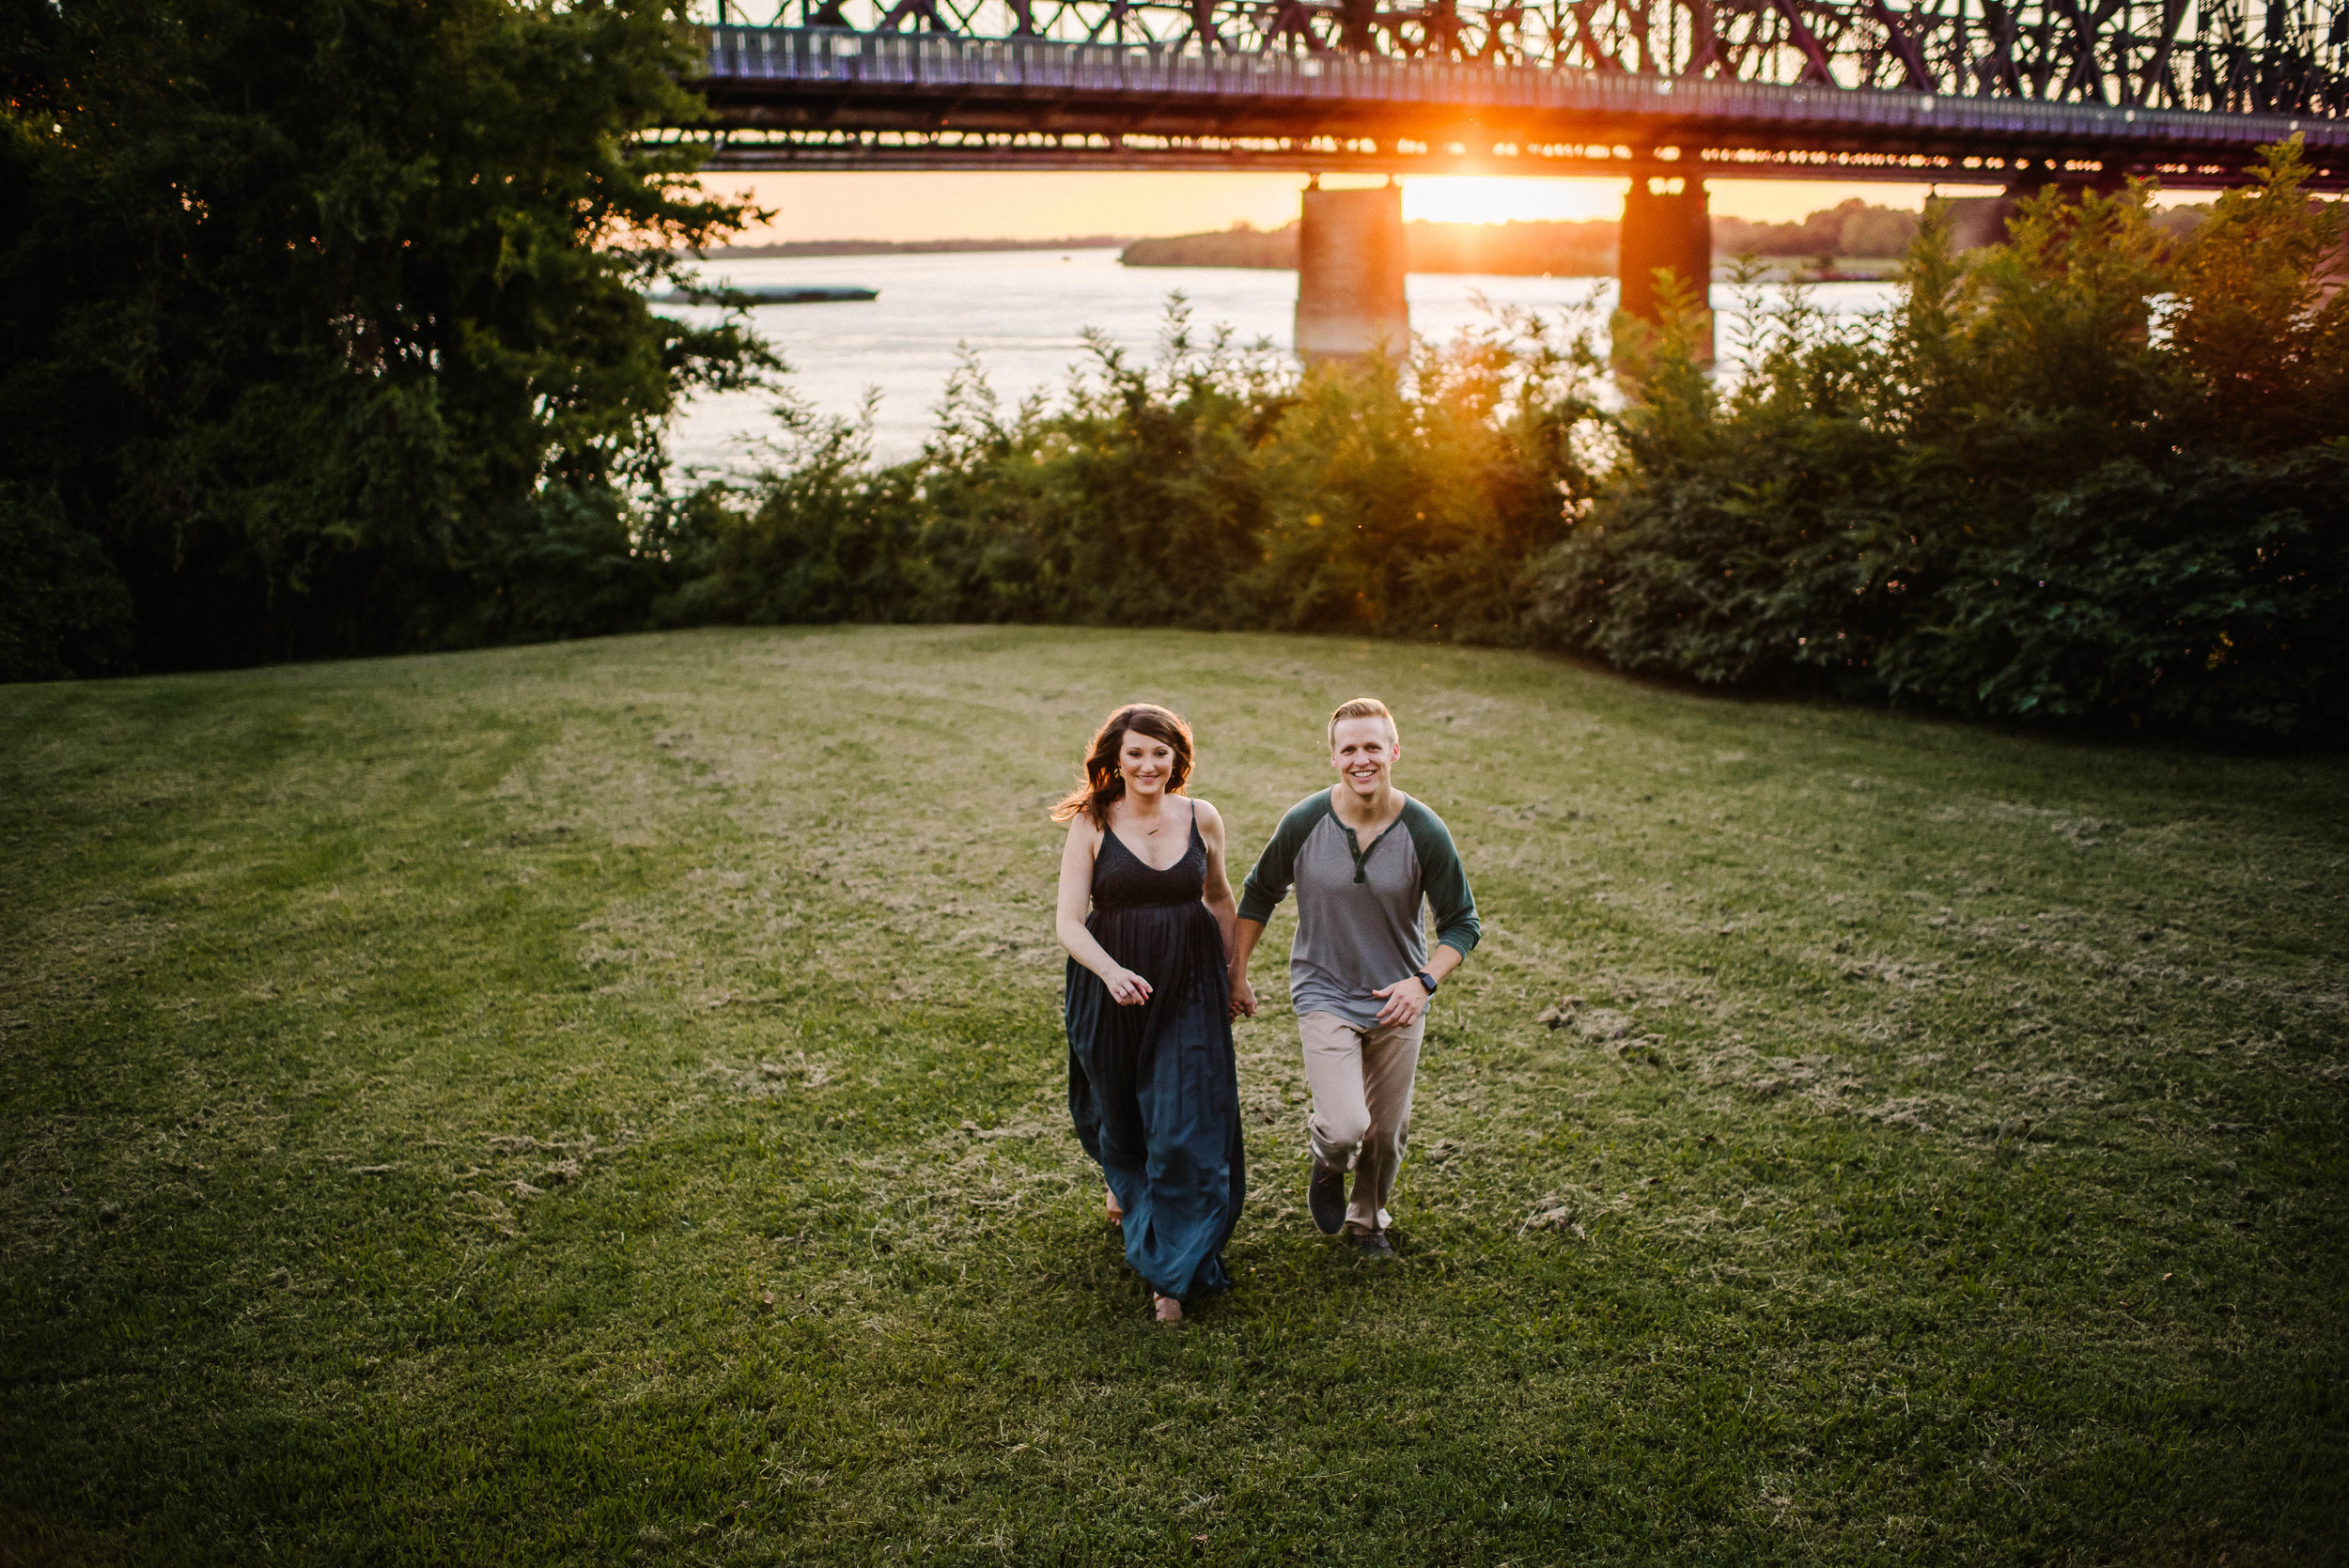 Downtown Memphis Engagement_Megan & Adam_Ashley Benham Photography-114.jpg